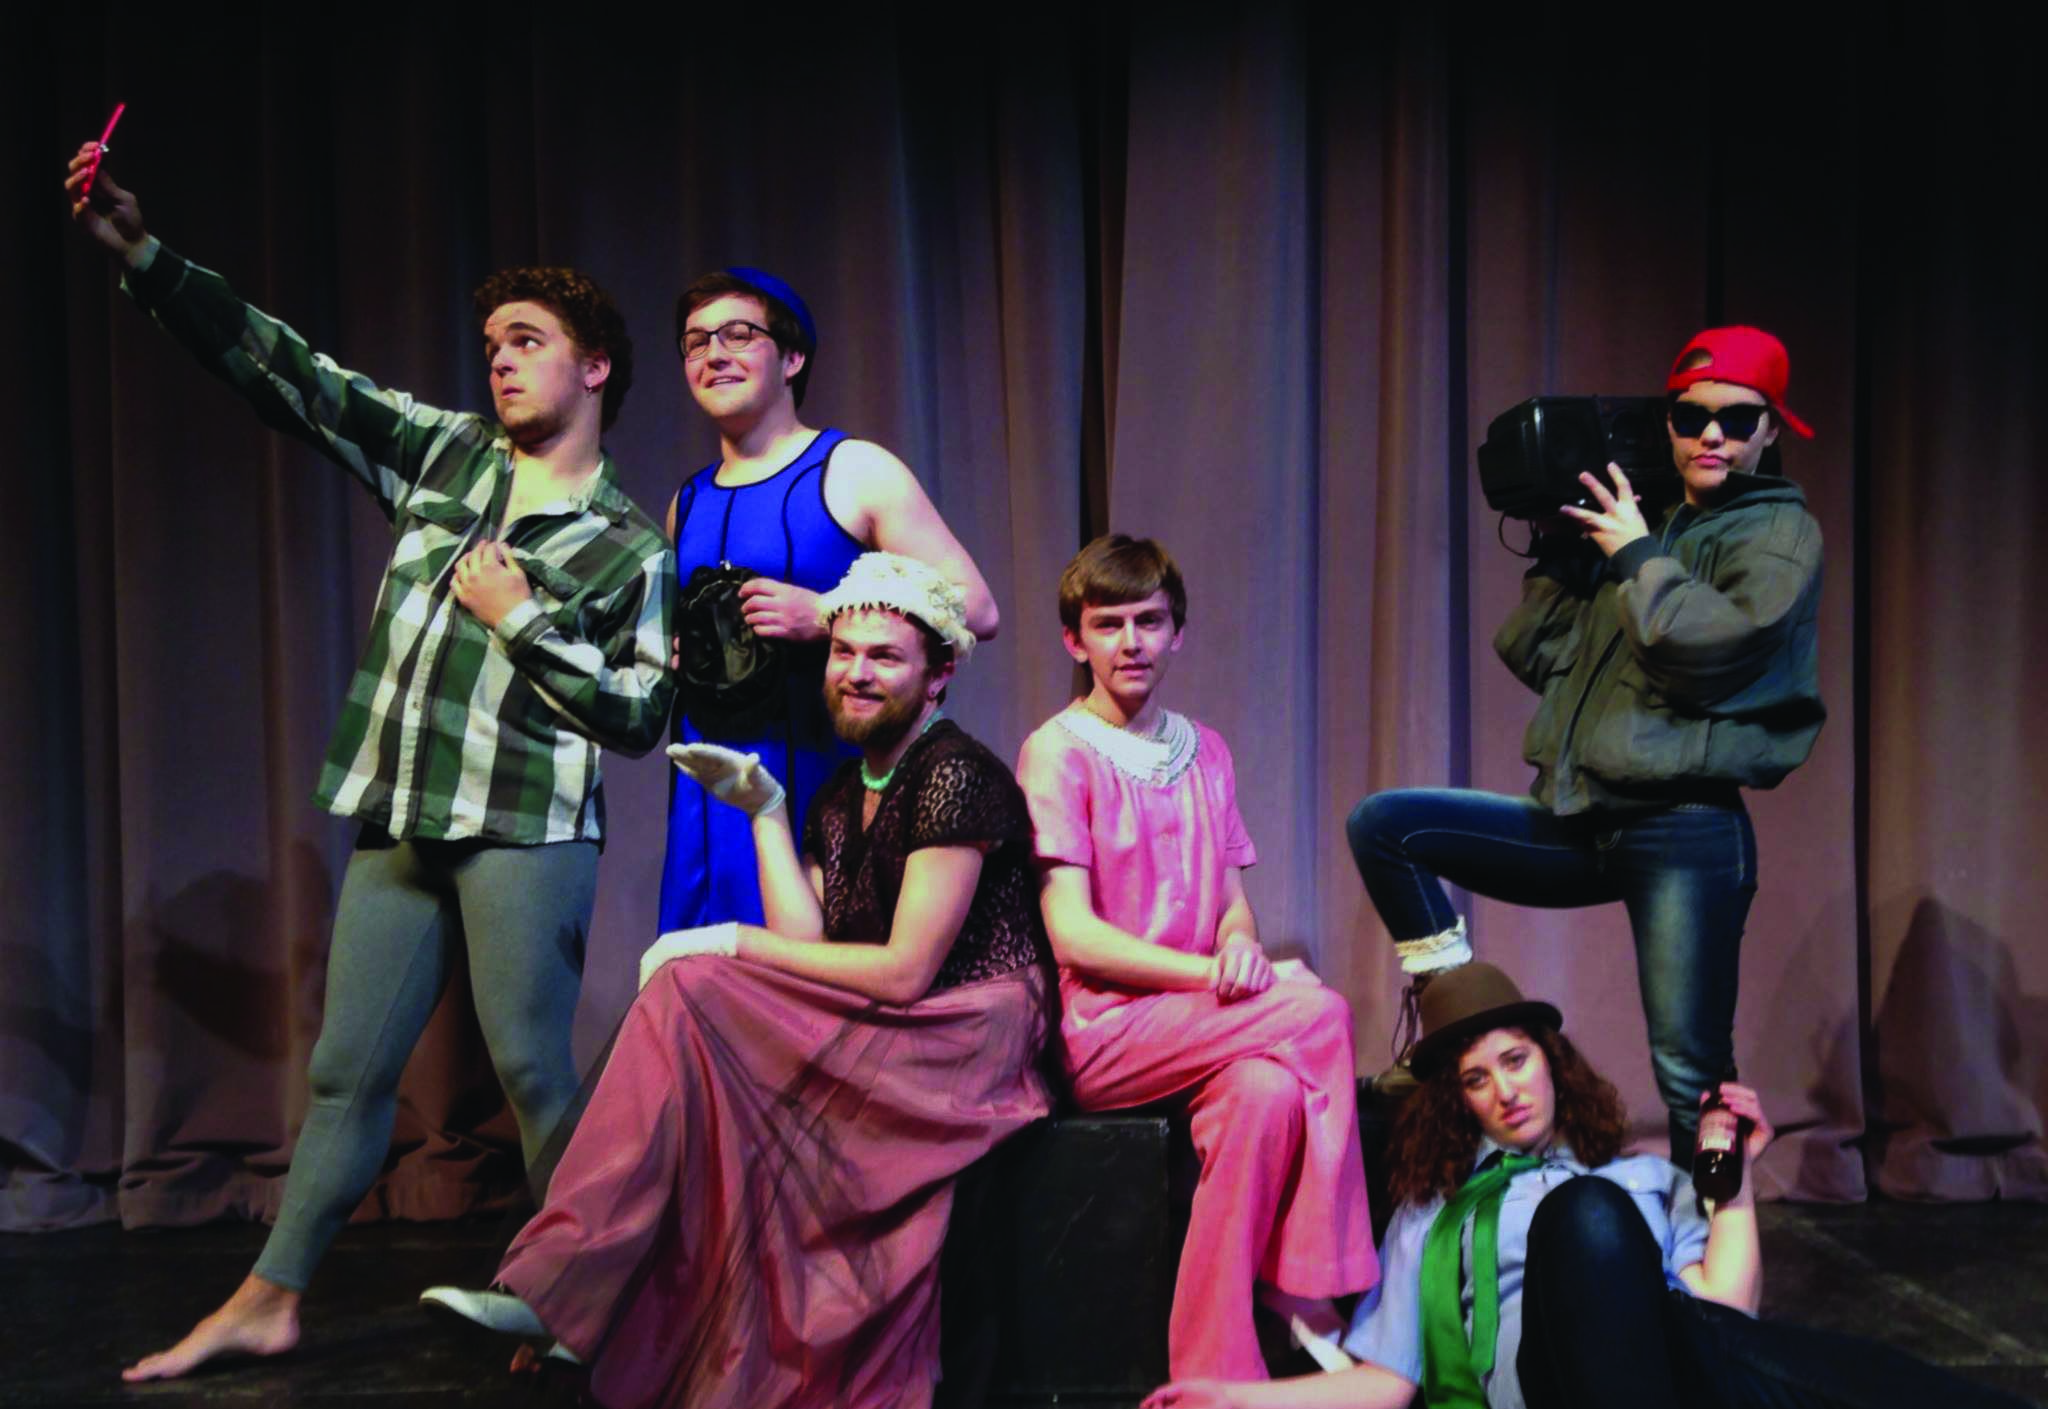 Student actors pose for a picture in cross-dressed costumes